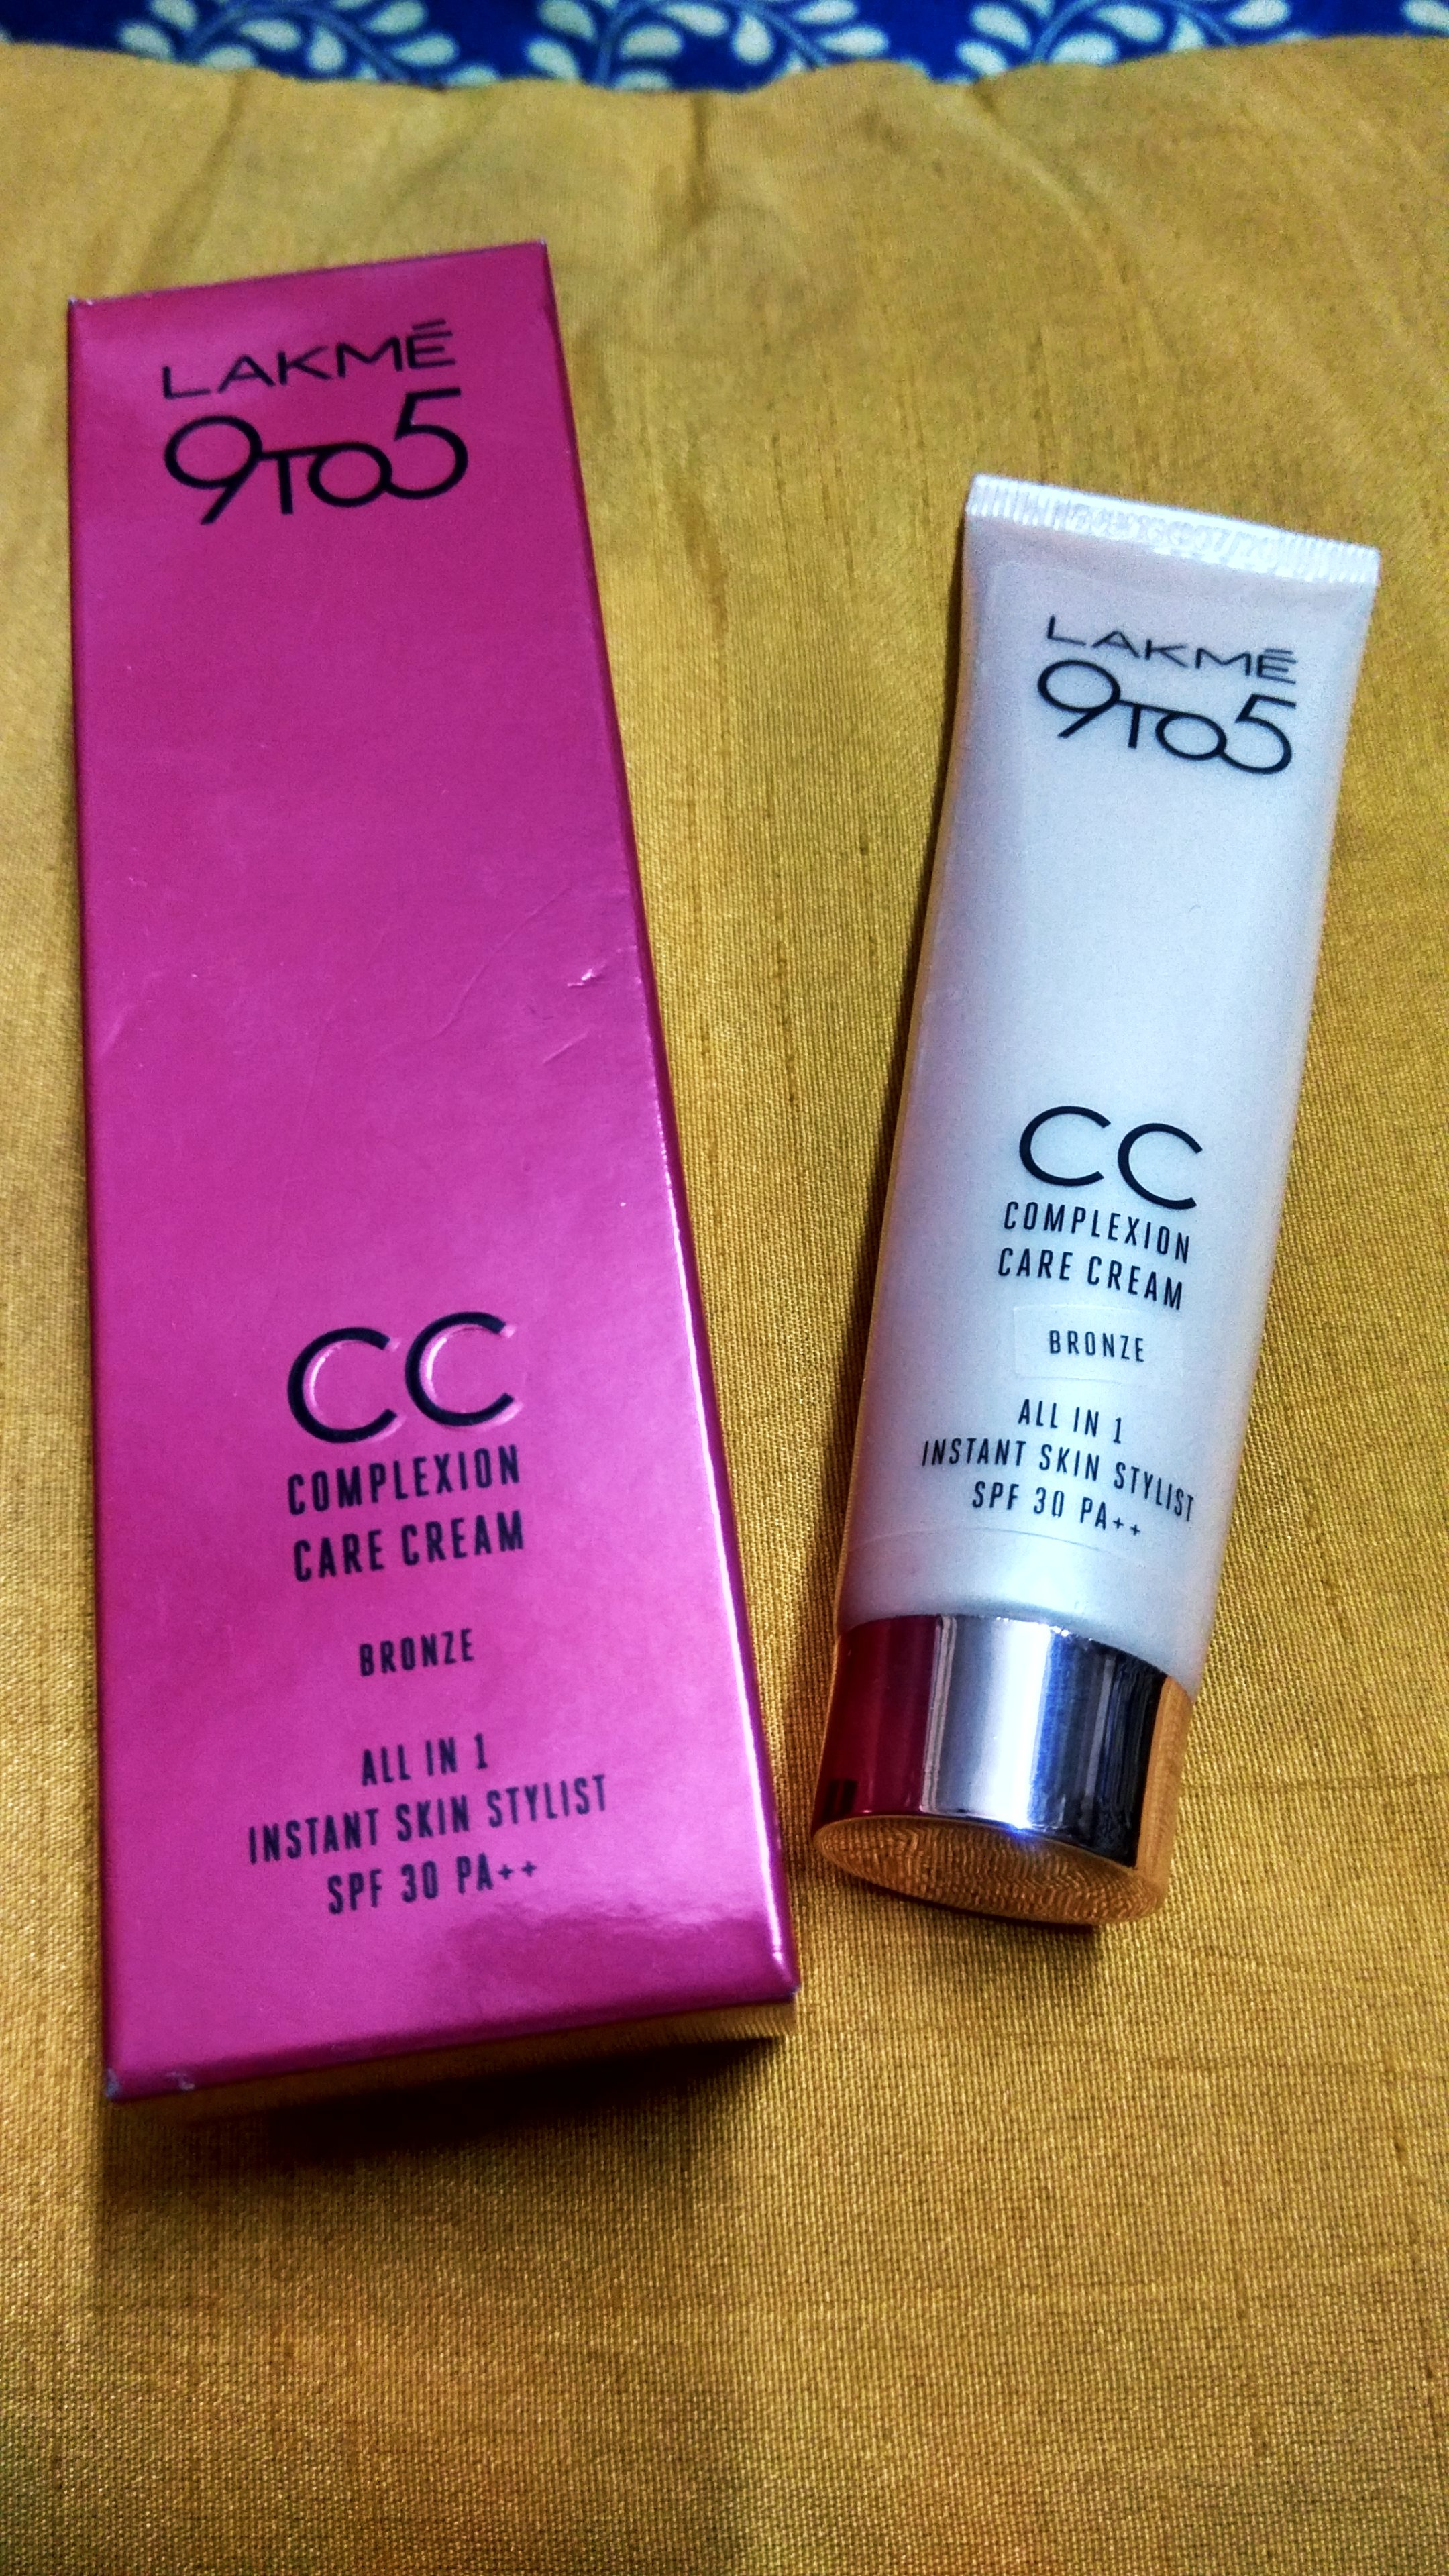 Lakme 9 to 5 CC Cream -Lakme CC Cream-By thestylishvibe